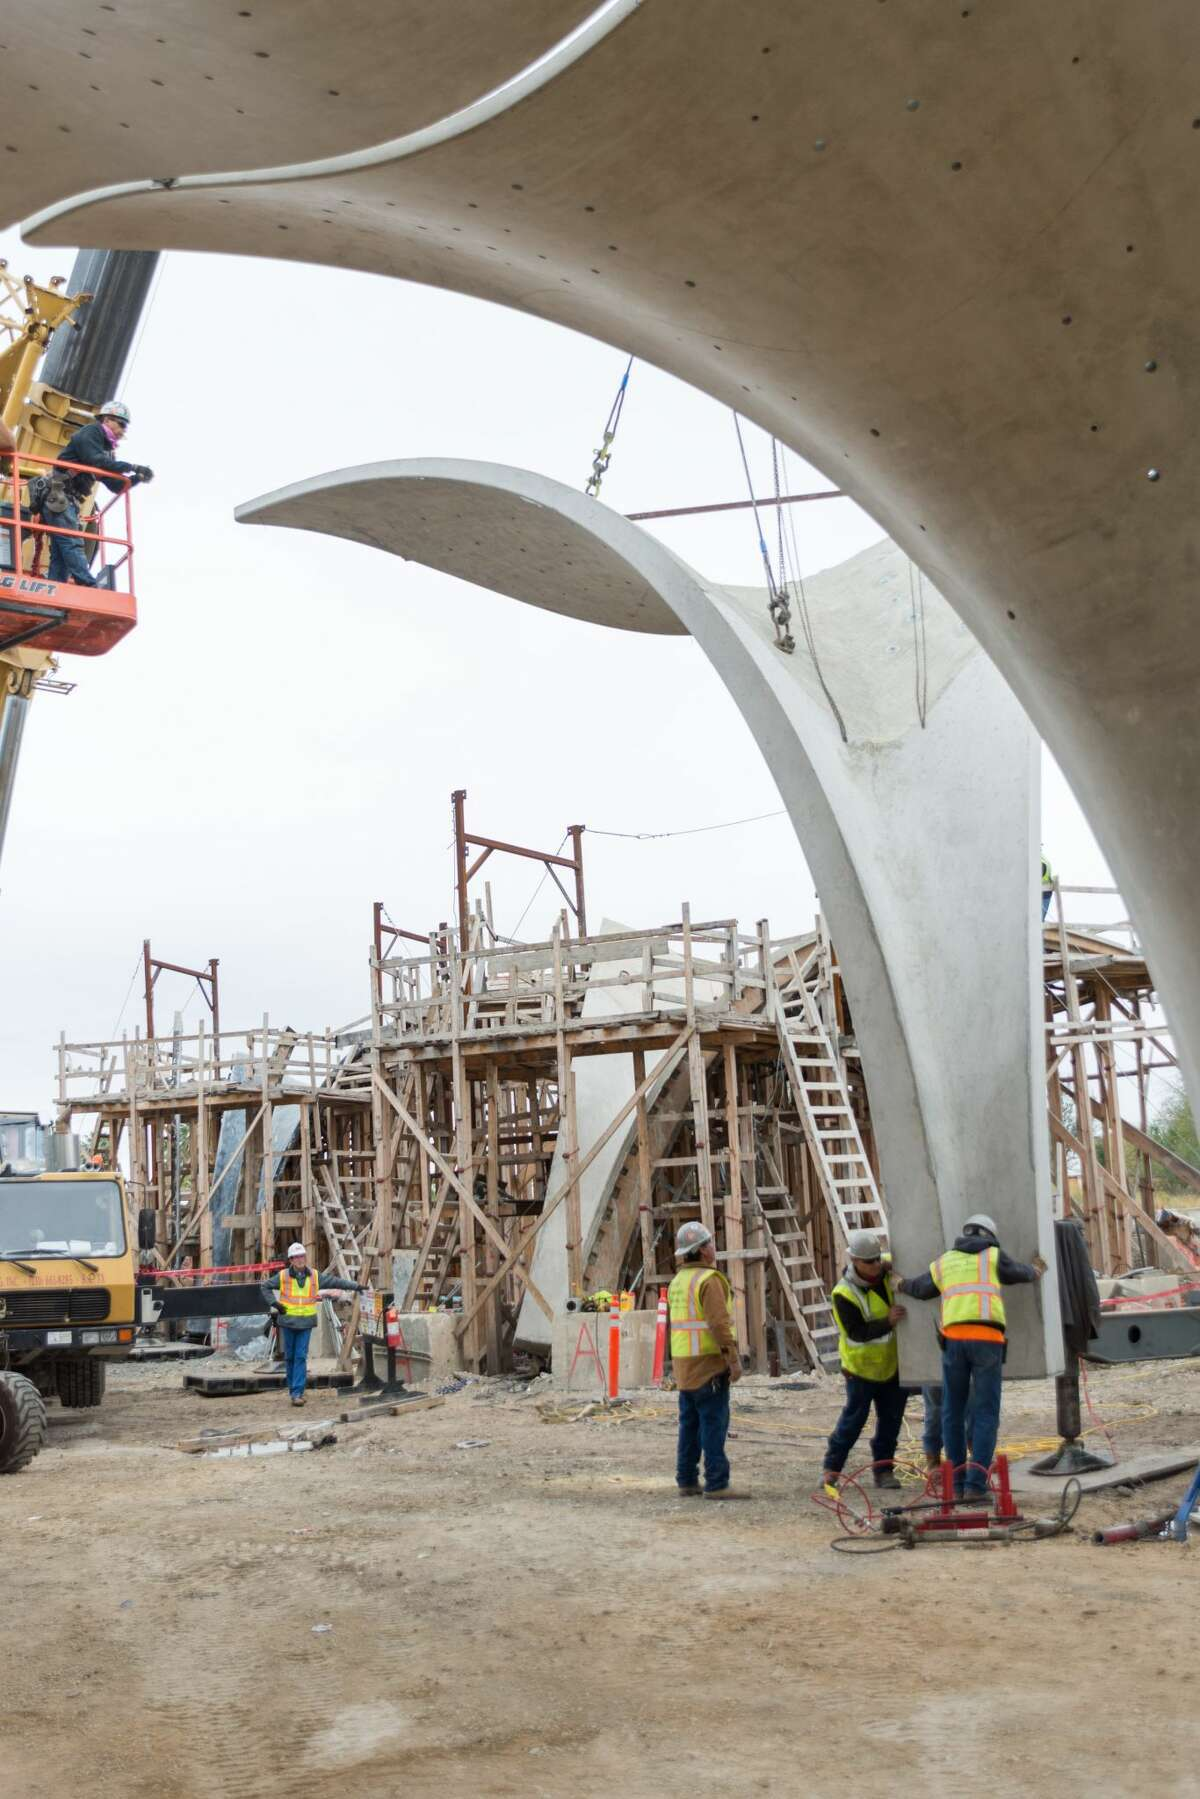 Workers piece together the last petal structure at Confluence Park on Dec. 5, 2017.